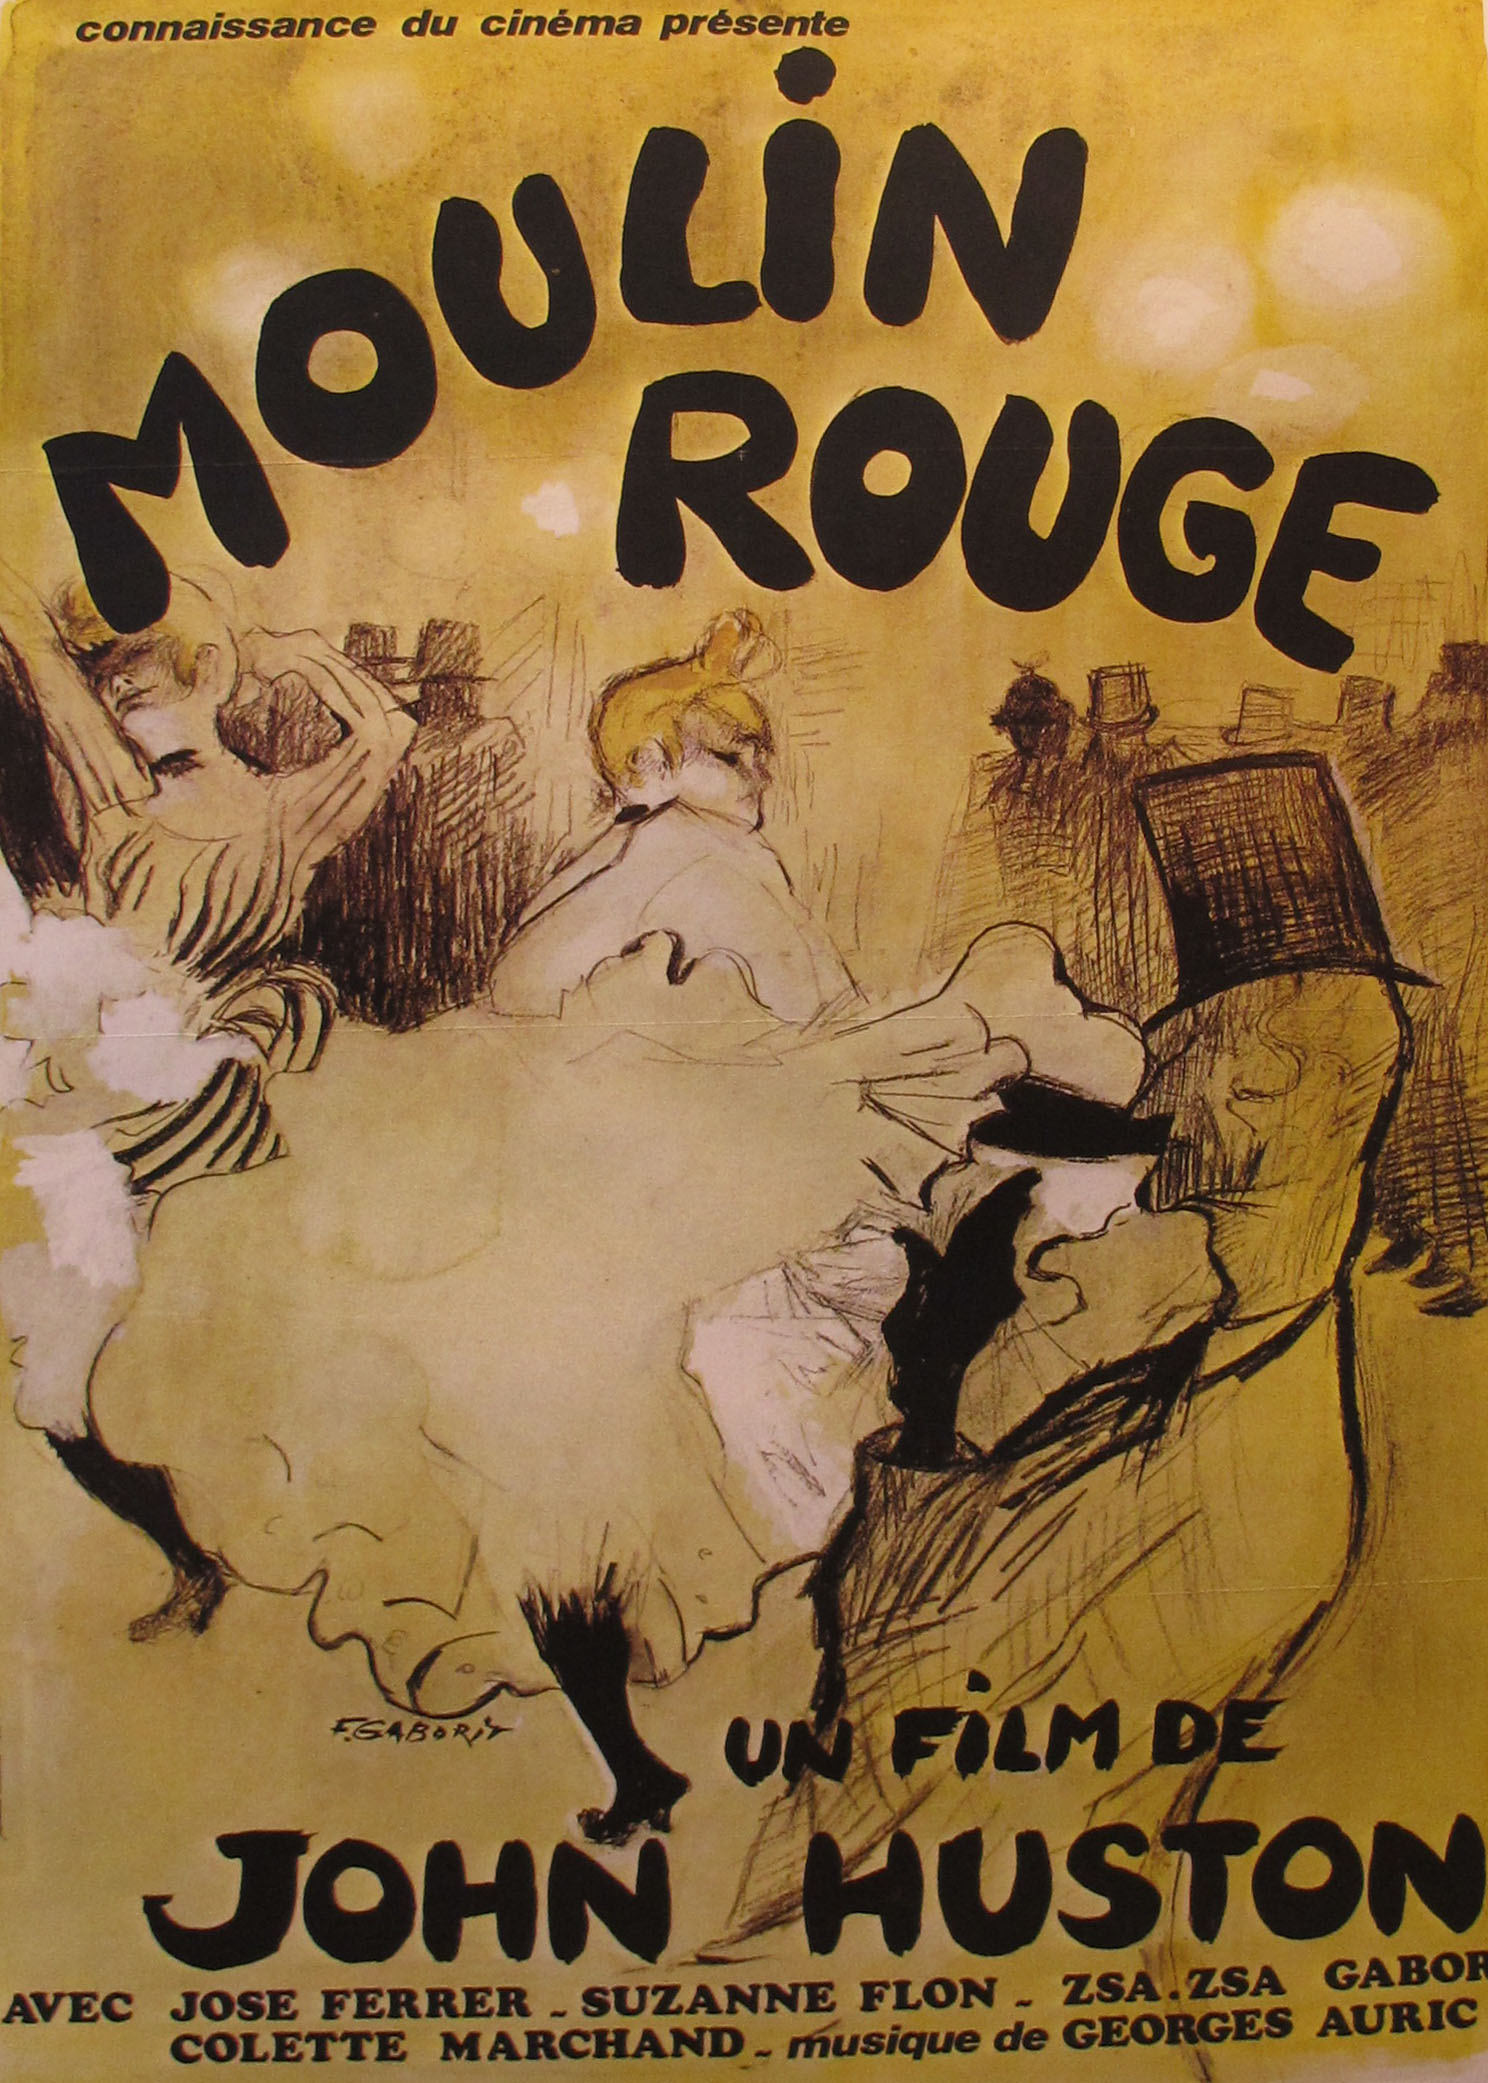 1950S FRENCH MOVIE POSTER, MOULIN ROUGE by JOHN HUSTON ...